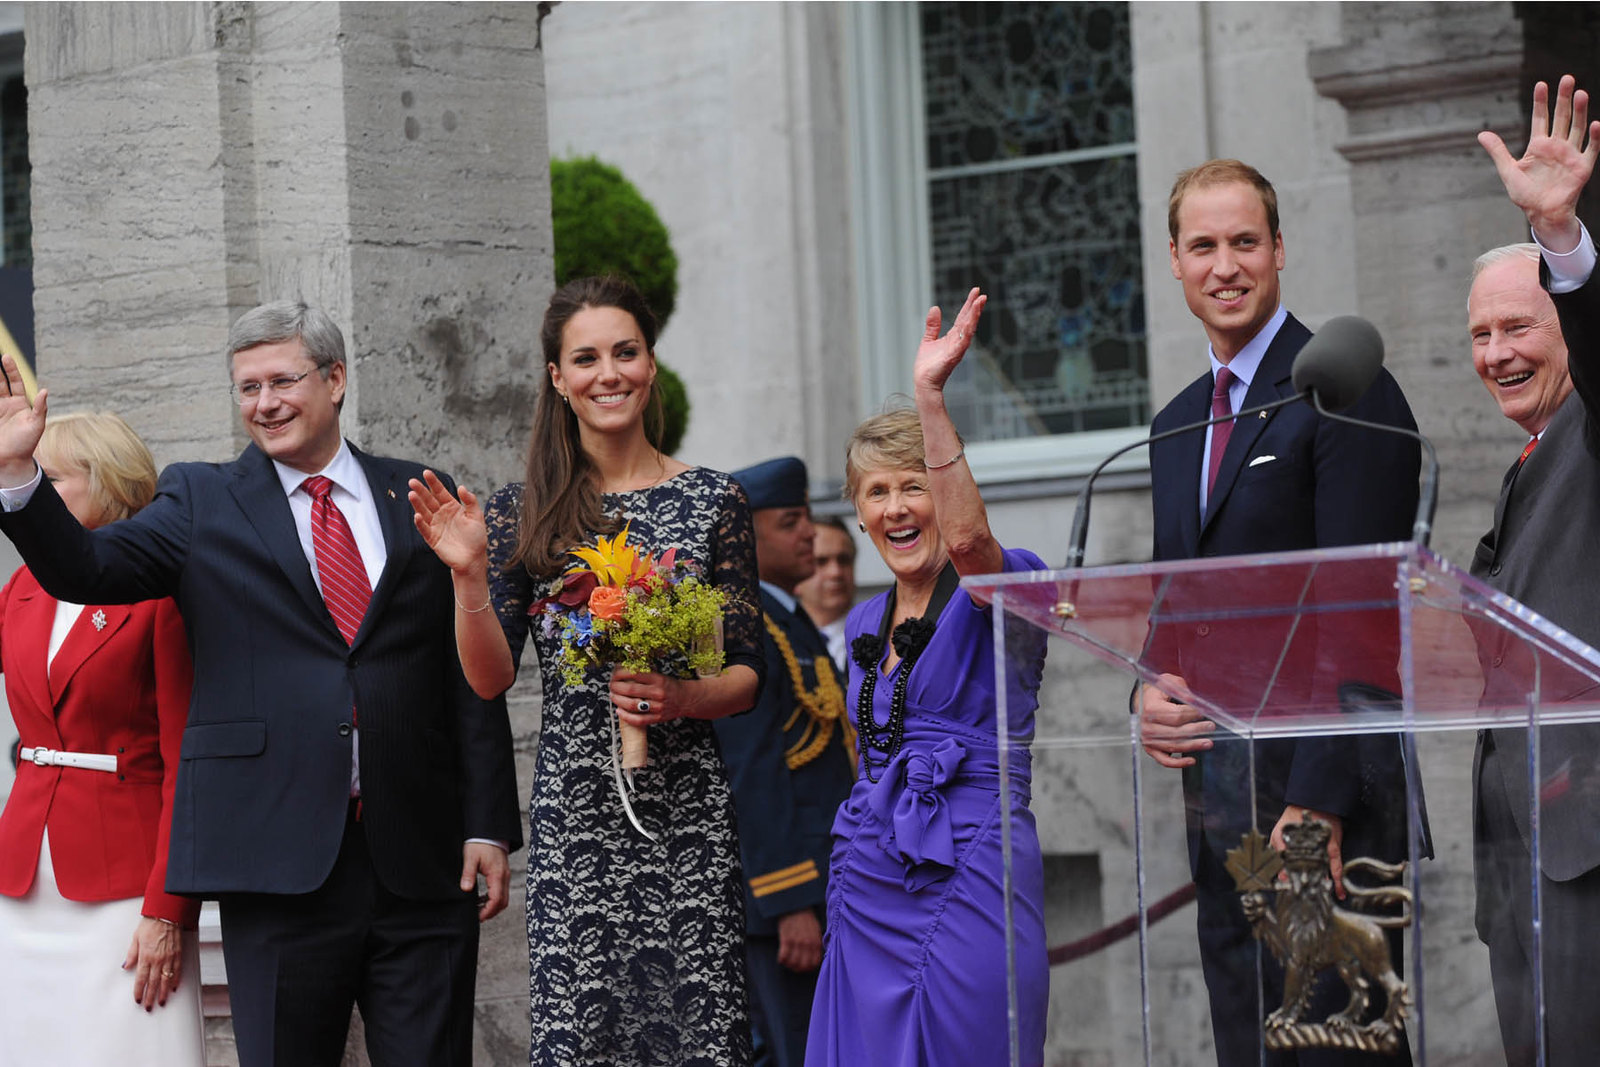 The Duke and Duchess of Cambridge at Rideau Hall in Ottawa during the Royal tour of Canada